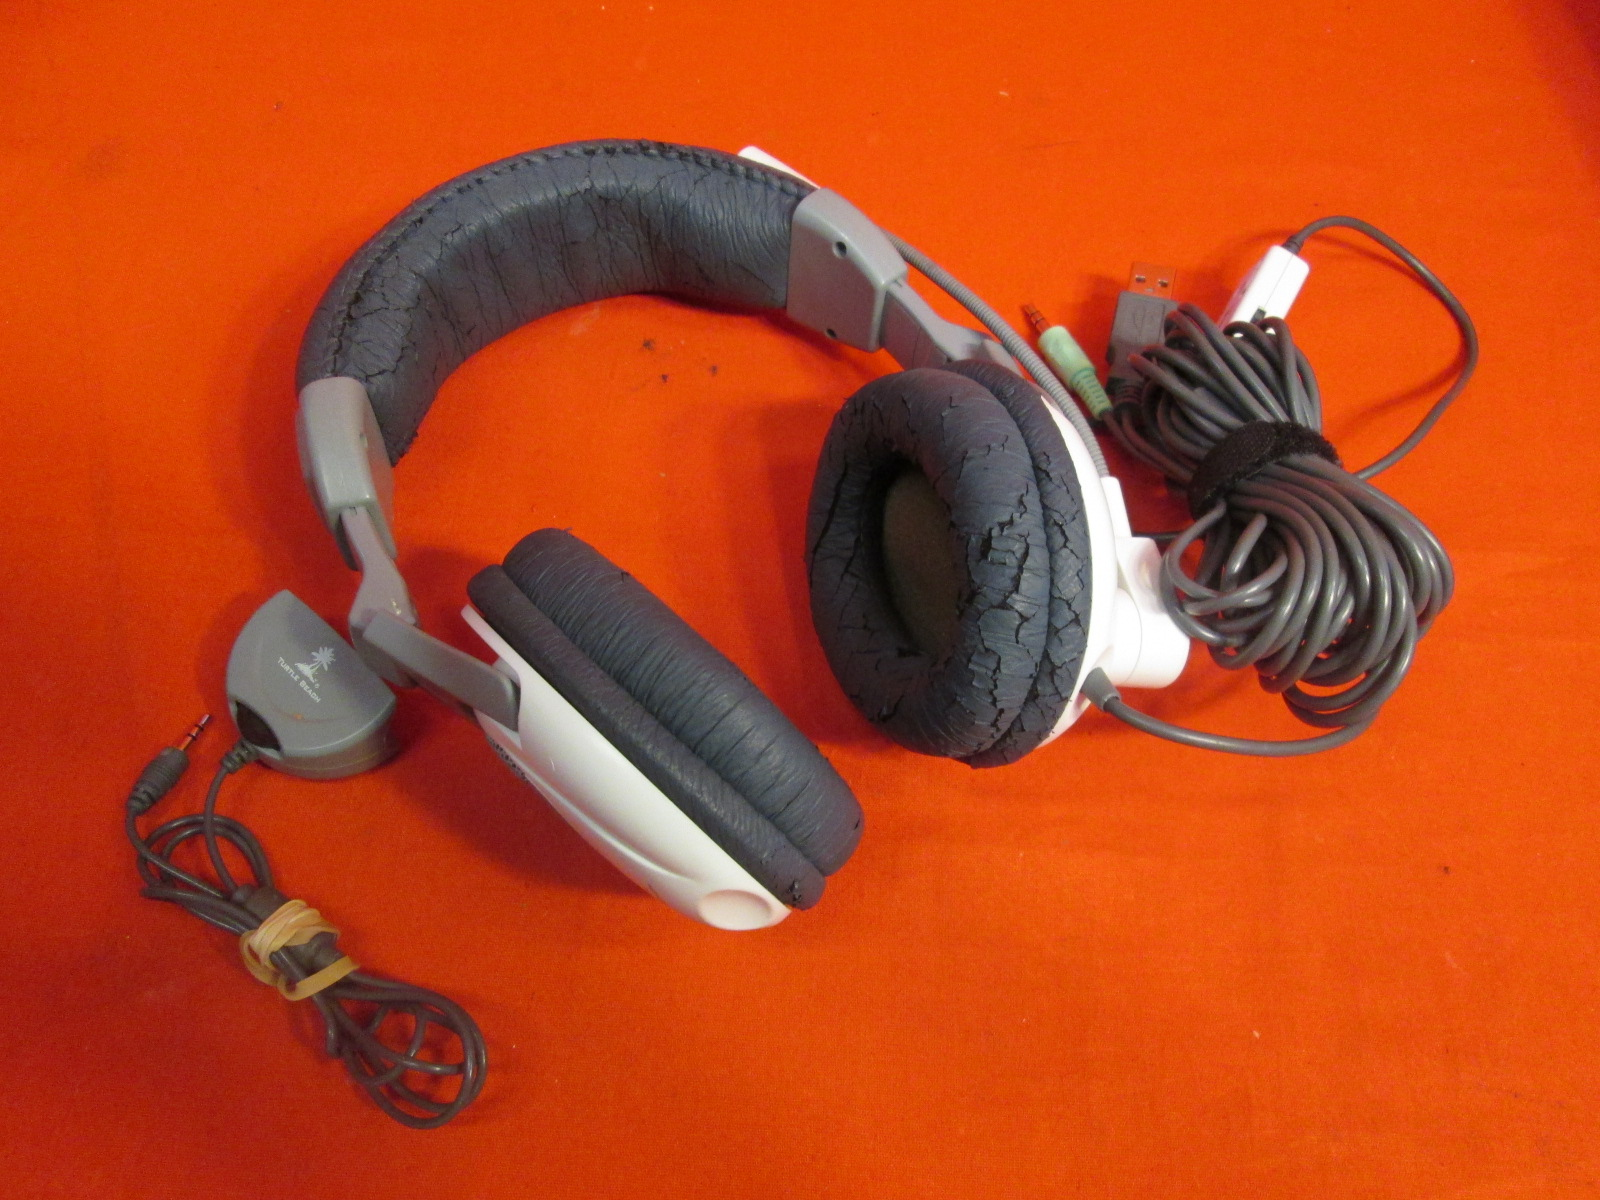 Ear Force X1 Stereo Headset With Chat For Xbox 360 Broken